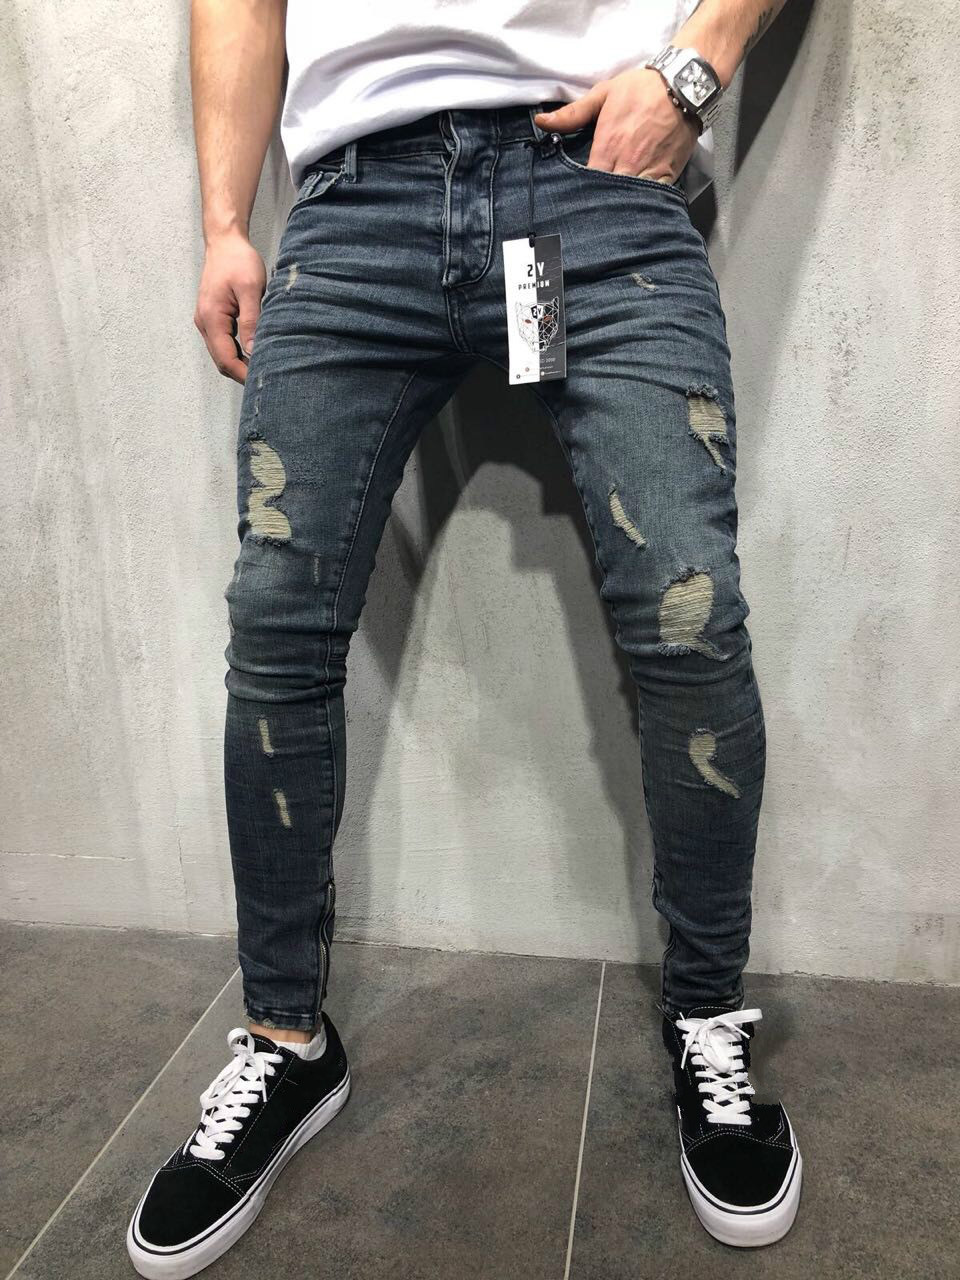 Jeans   Slim Spring Long Pencil Pants Ripped Hole 2018 Men's Fashion Thin Skinny   Jeans   for Men Hiphop Trousers Clothes Clothing